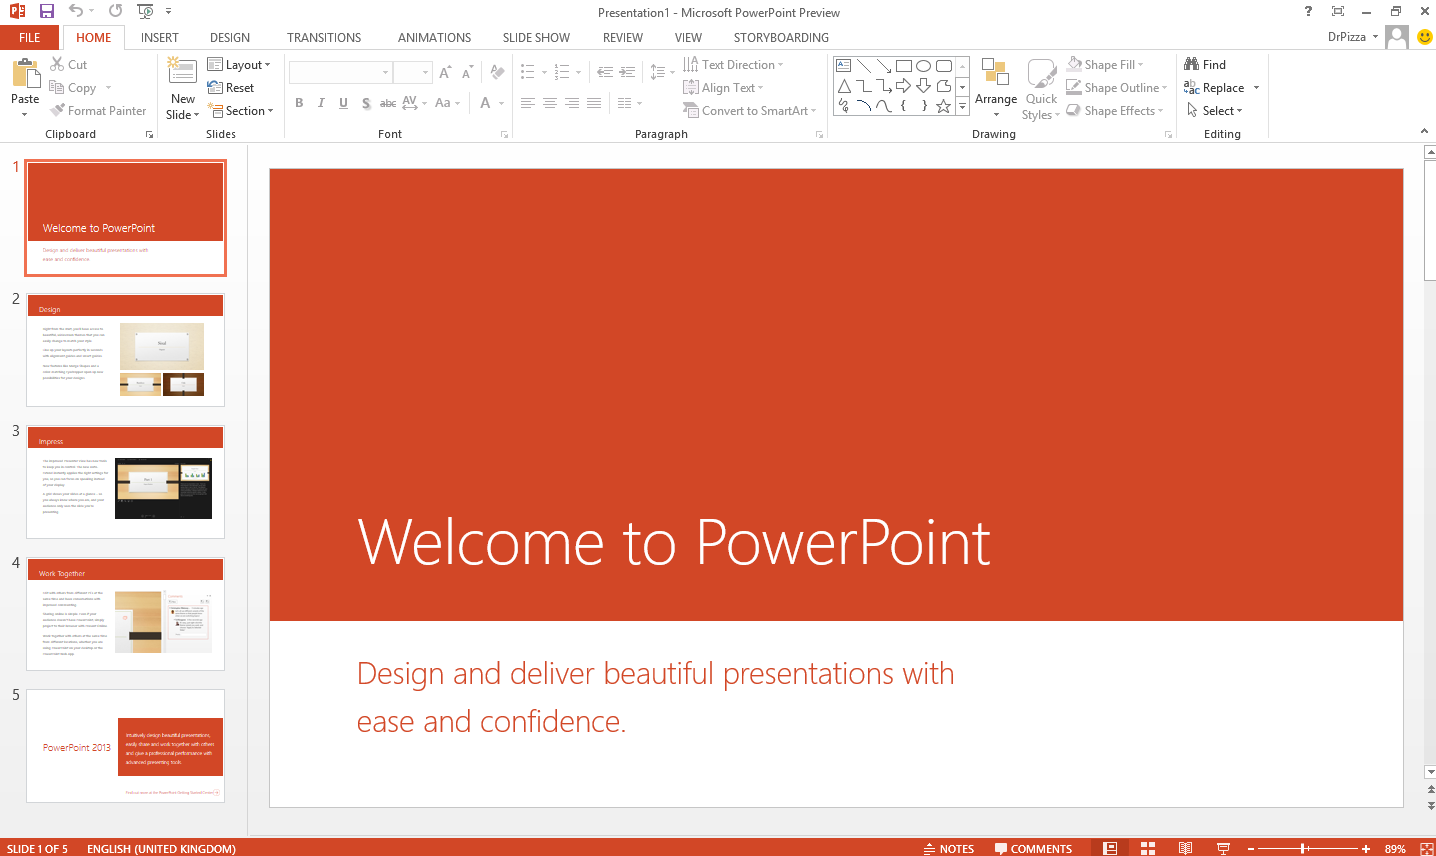 powerpoint 2007 free download for windows 10 64 bit